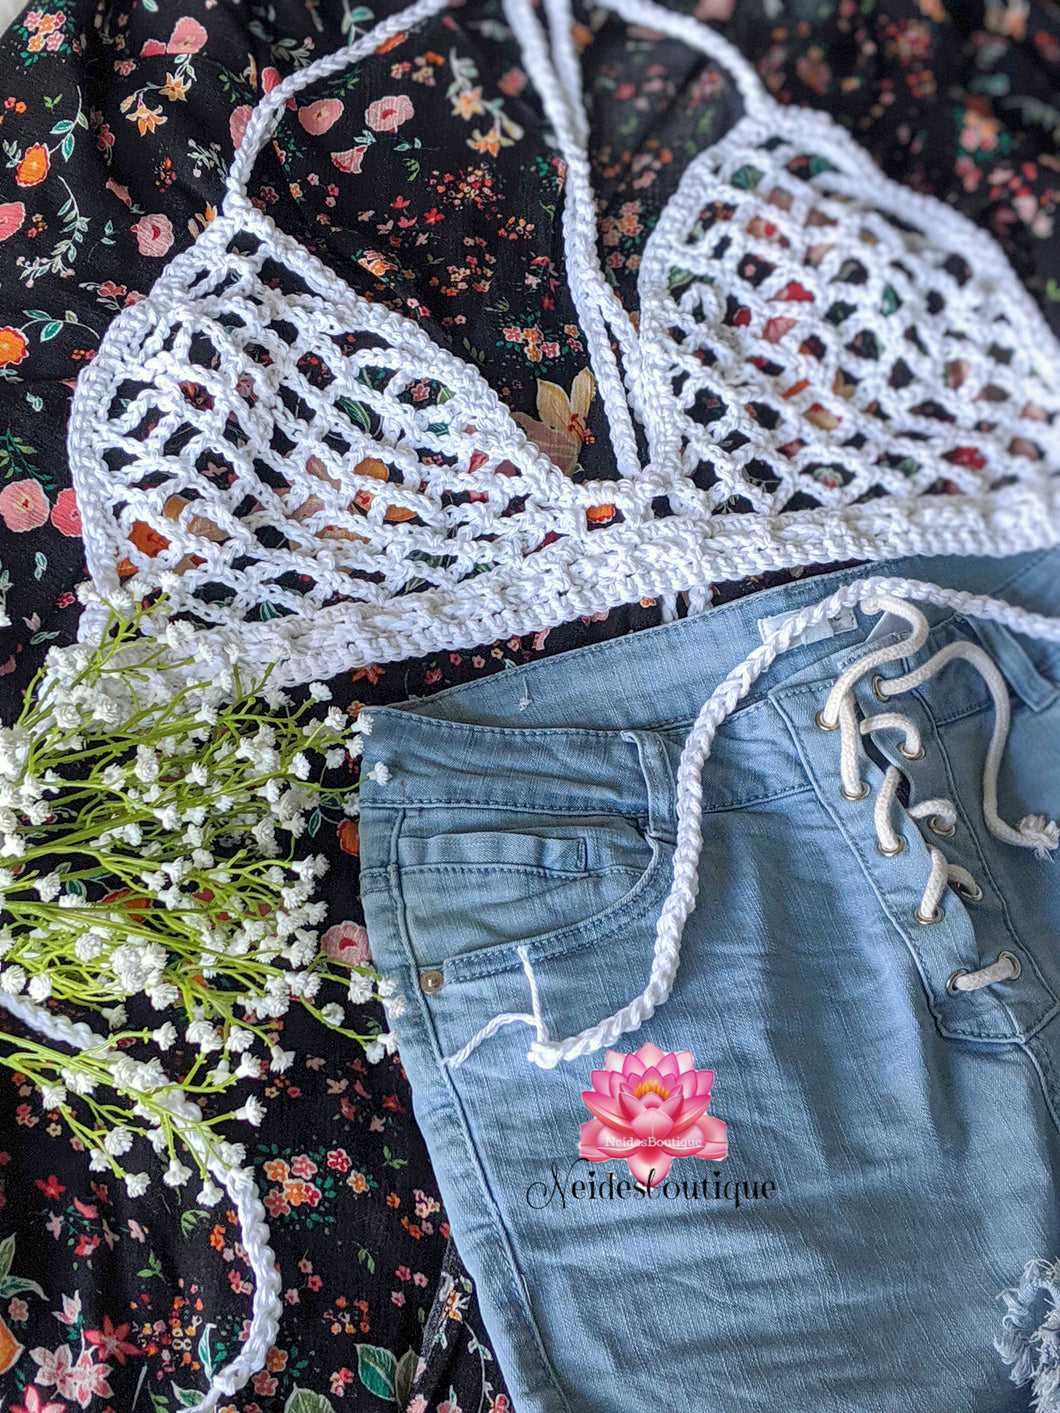 Peekaboo Bralette, crochet crop top